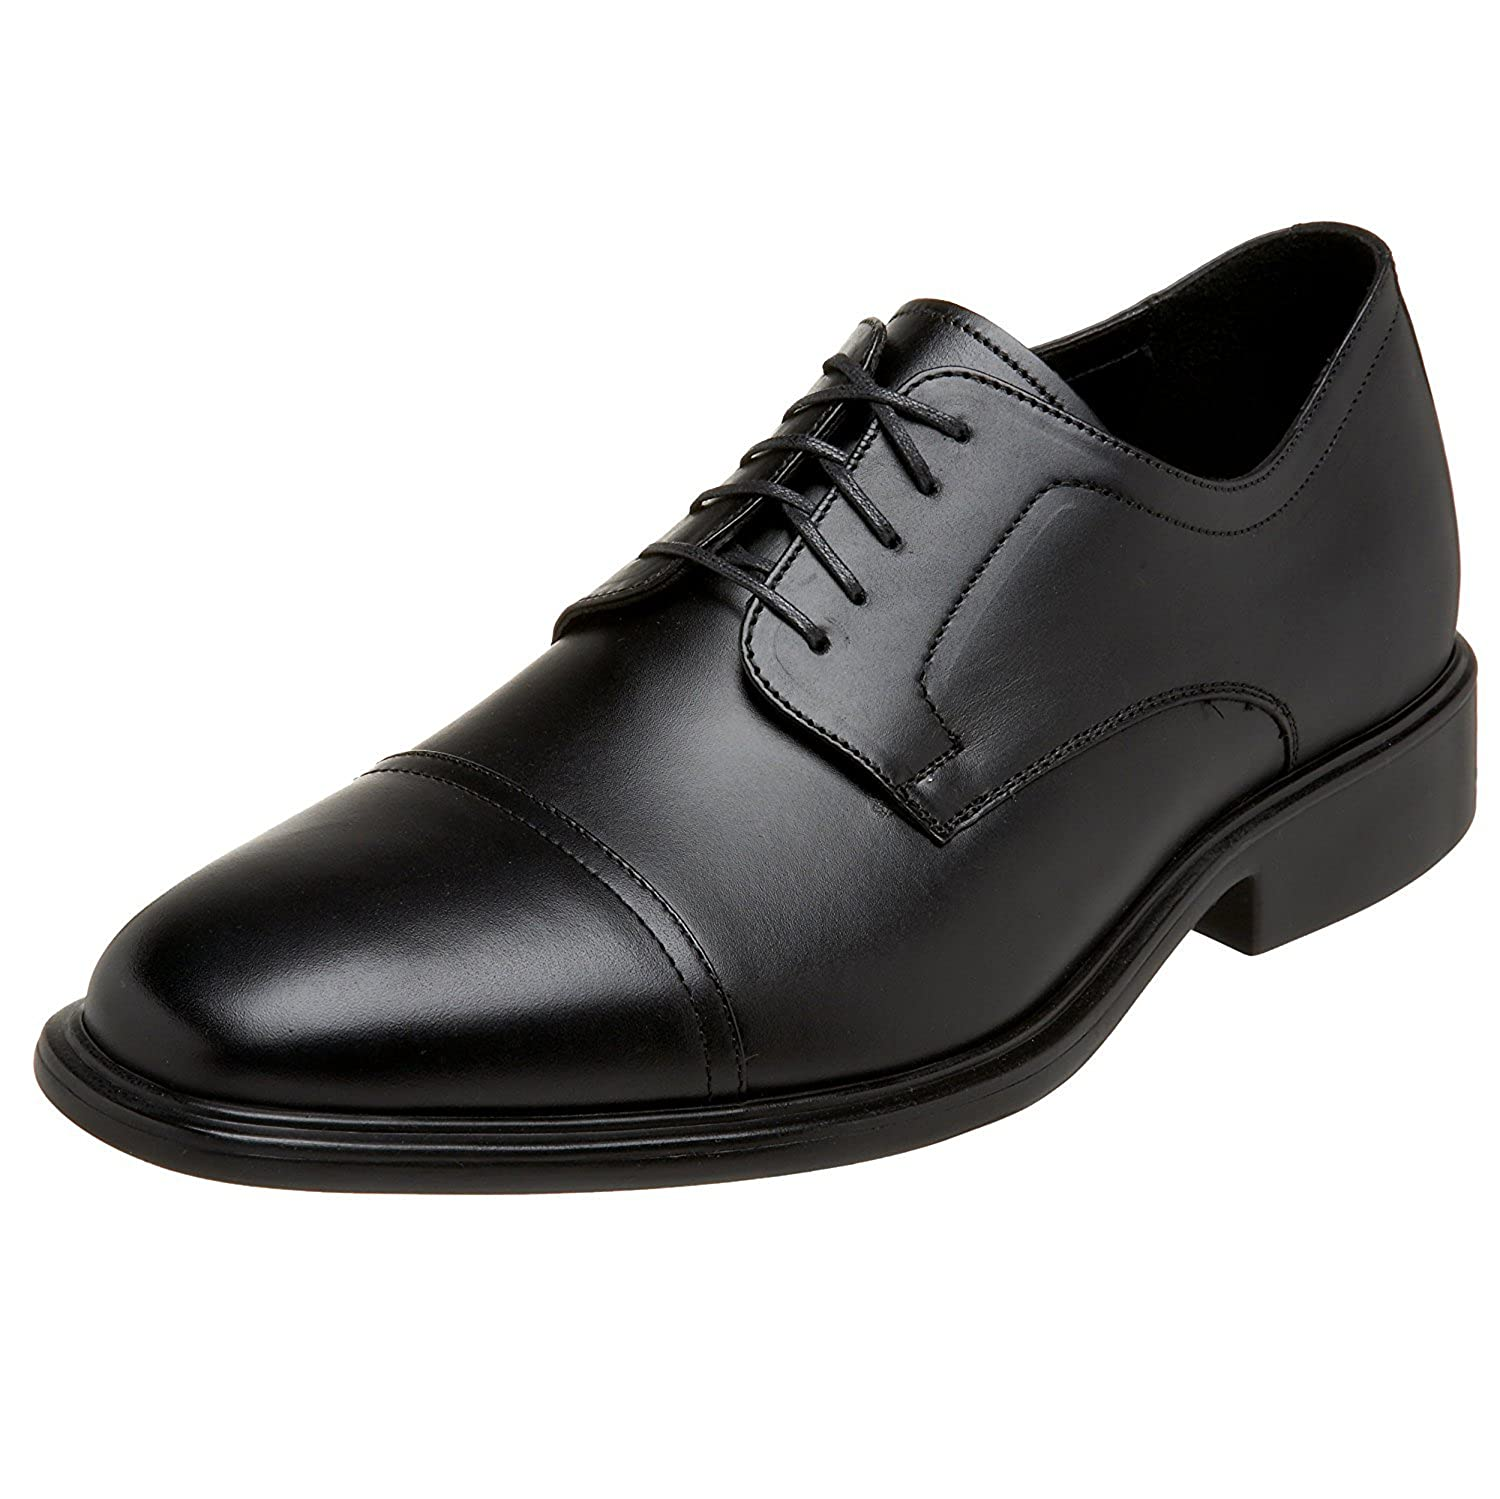 Neil M Men's Senator Cap-Toe Oxford Black8.5 3E US [並行輸入品] B075GGQM1K